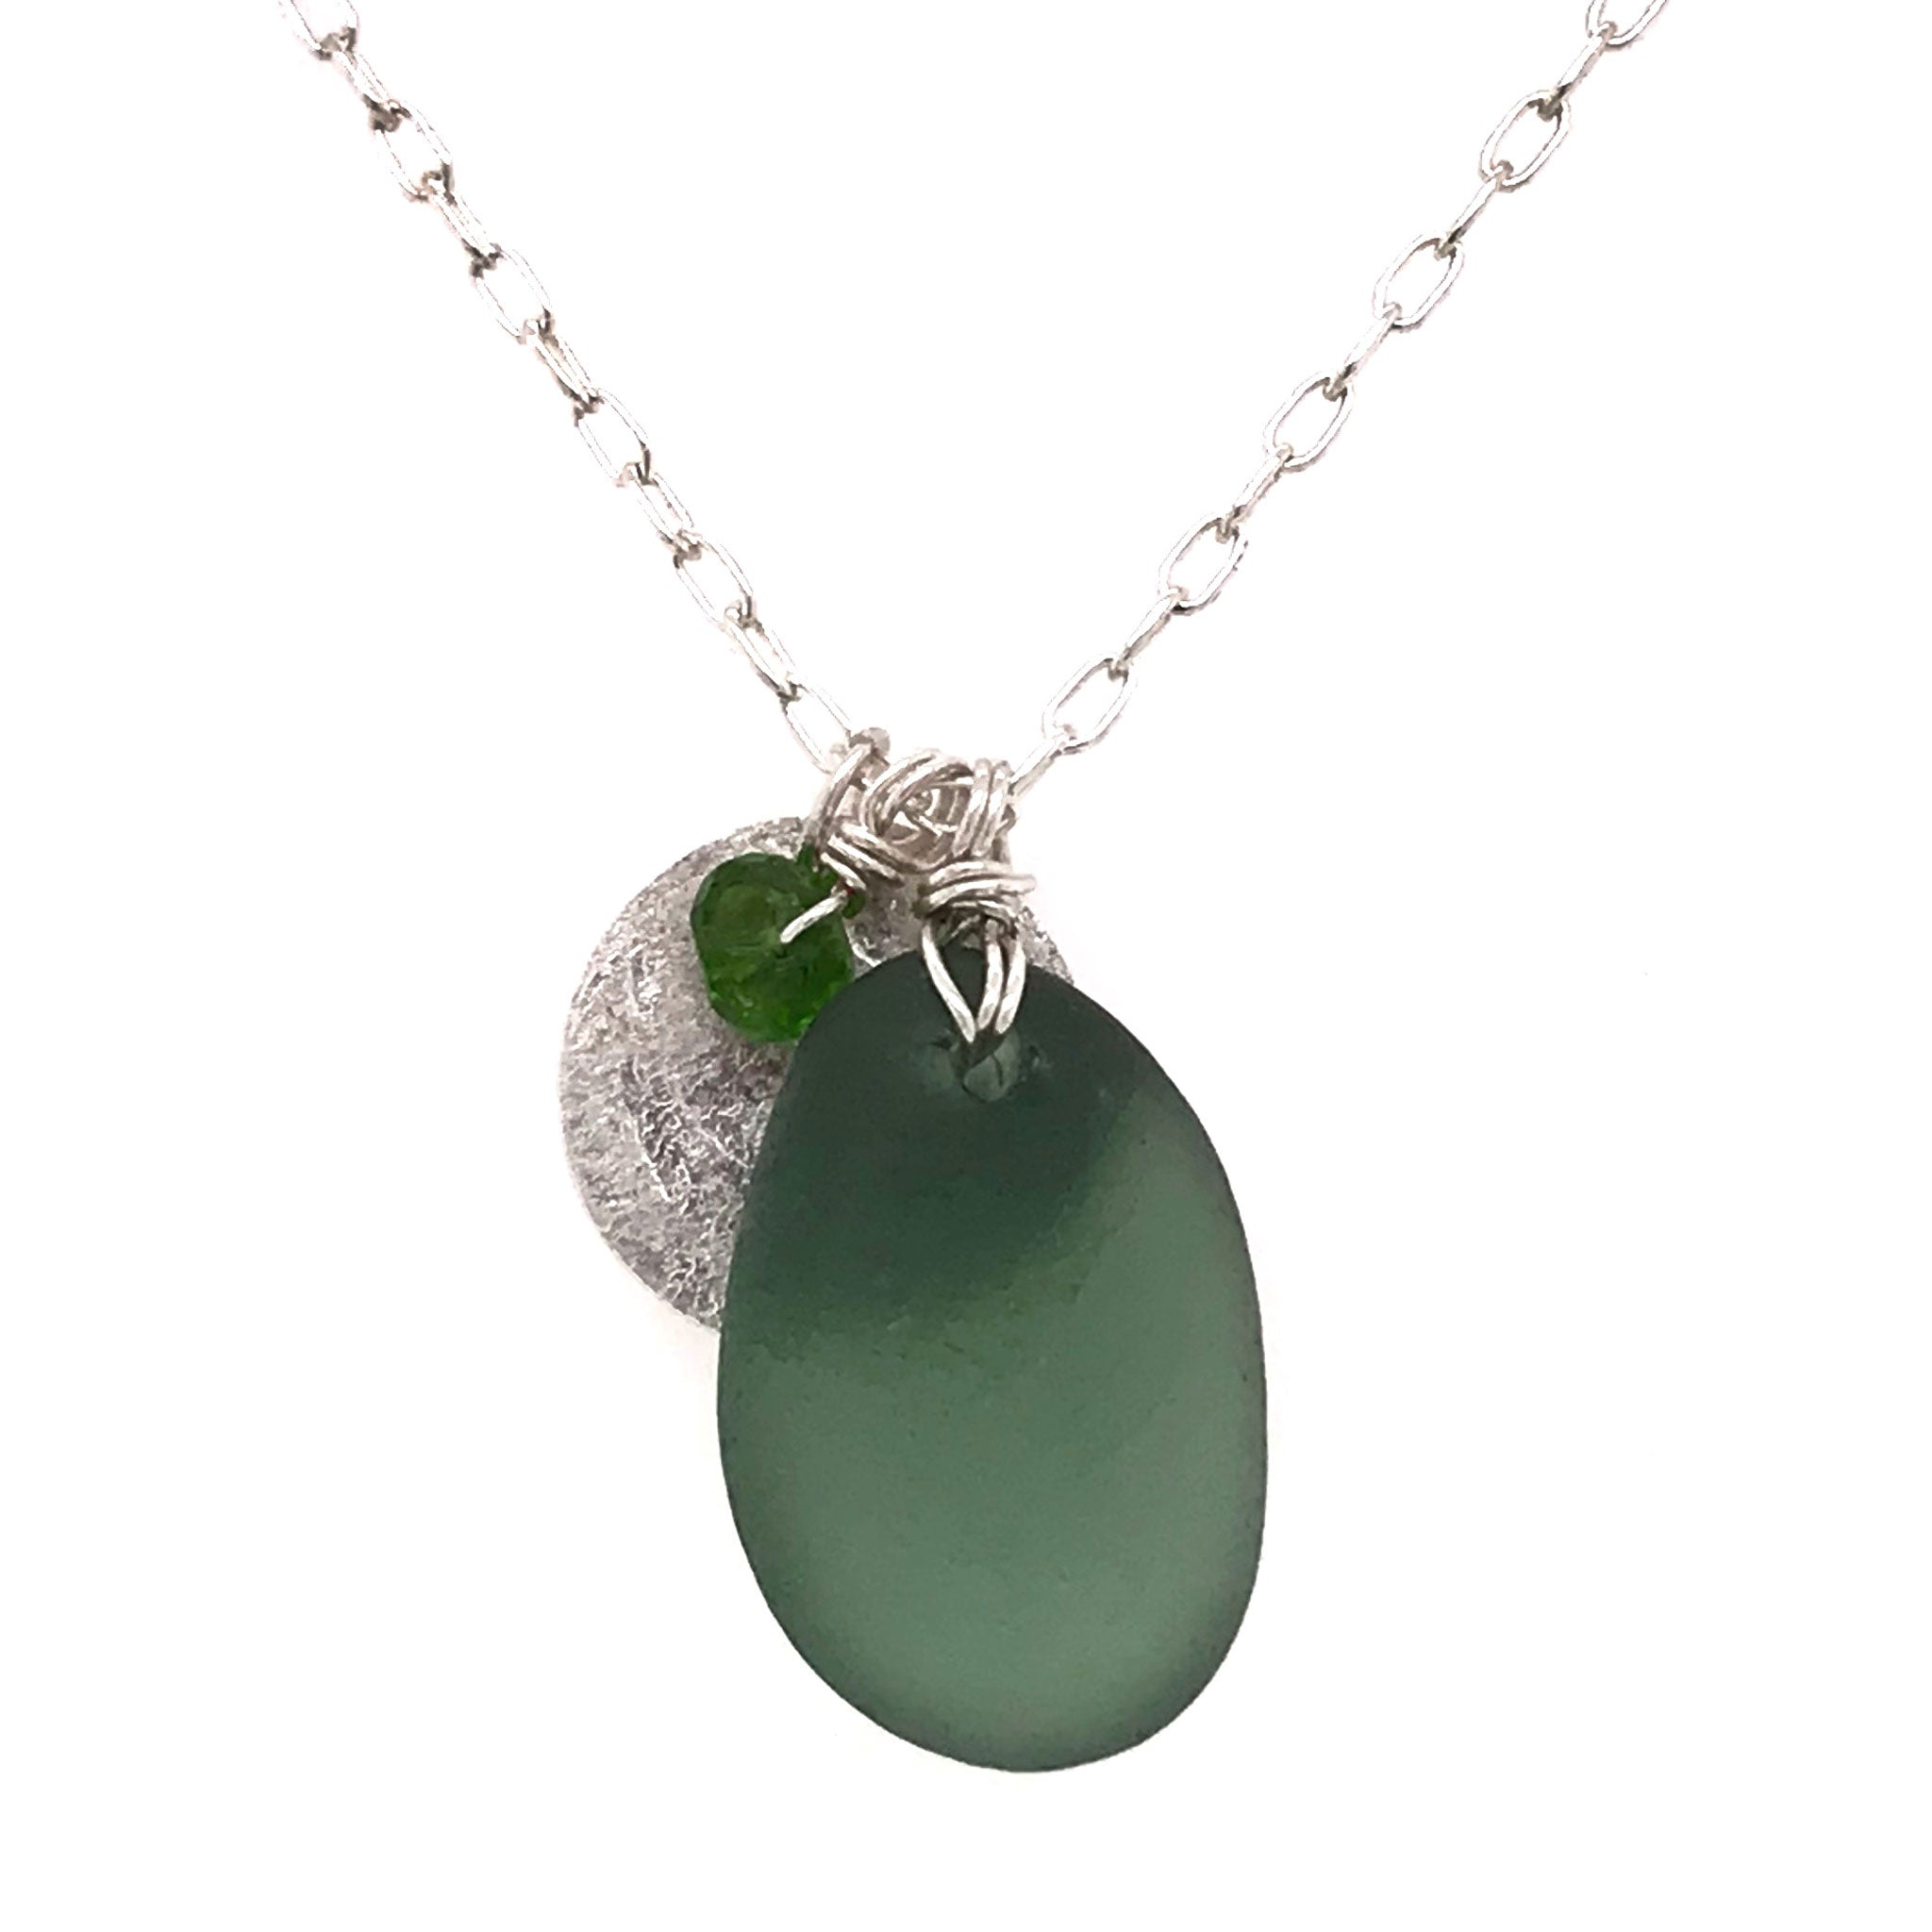 green necklace sterling silver with seaglass and silver disc charm kriket broadhurst jewelry